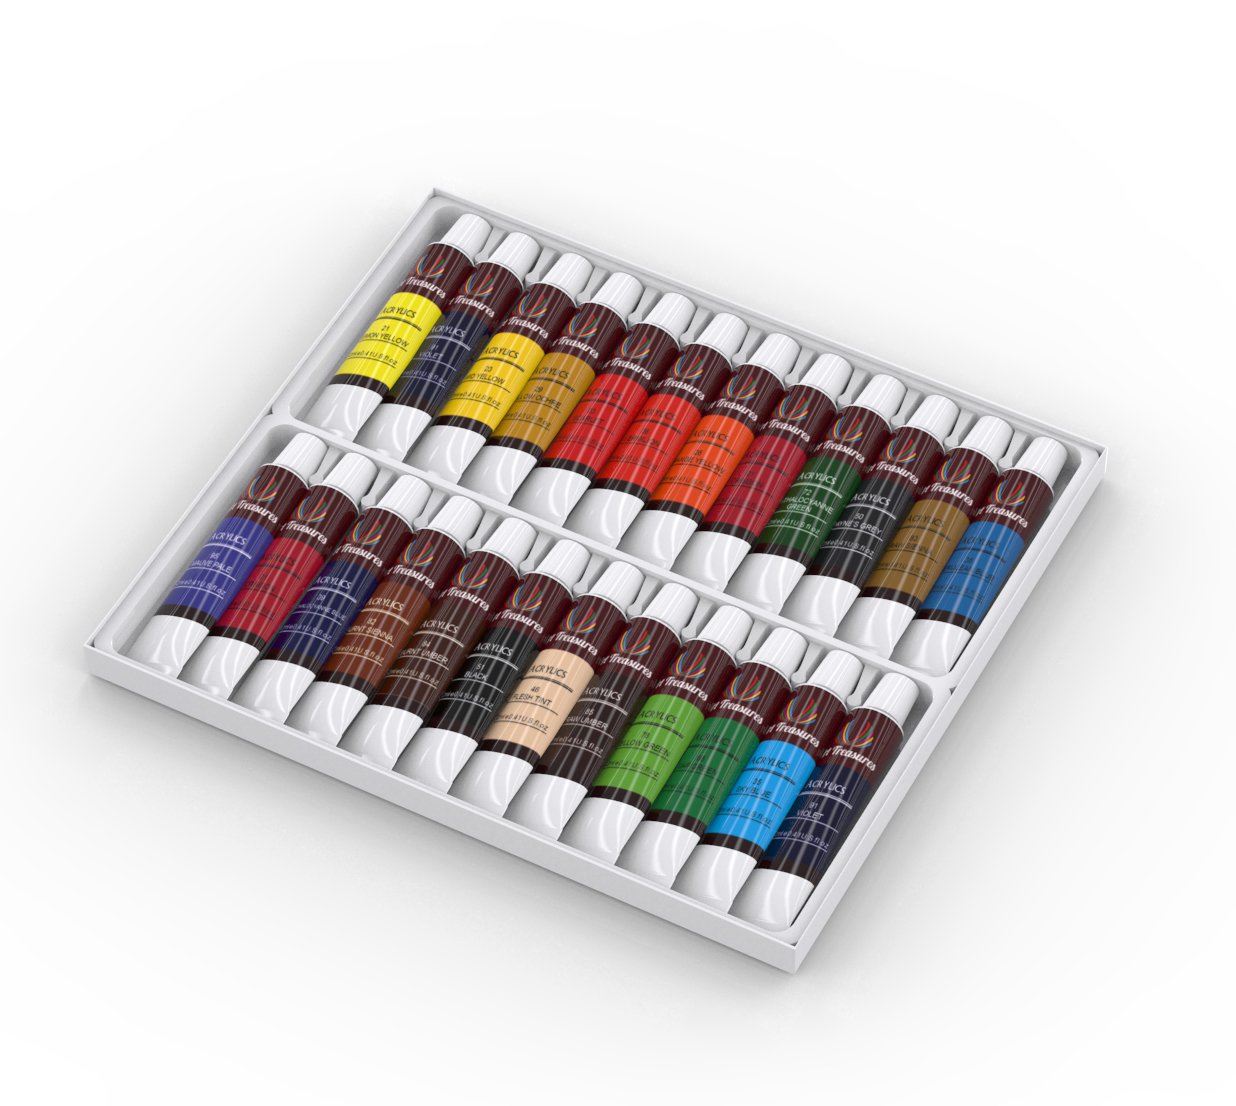 Acrylic Craft Paint - 24 Pack by Art Treasures (Image #3)